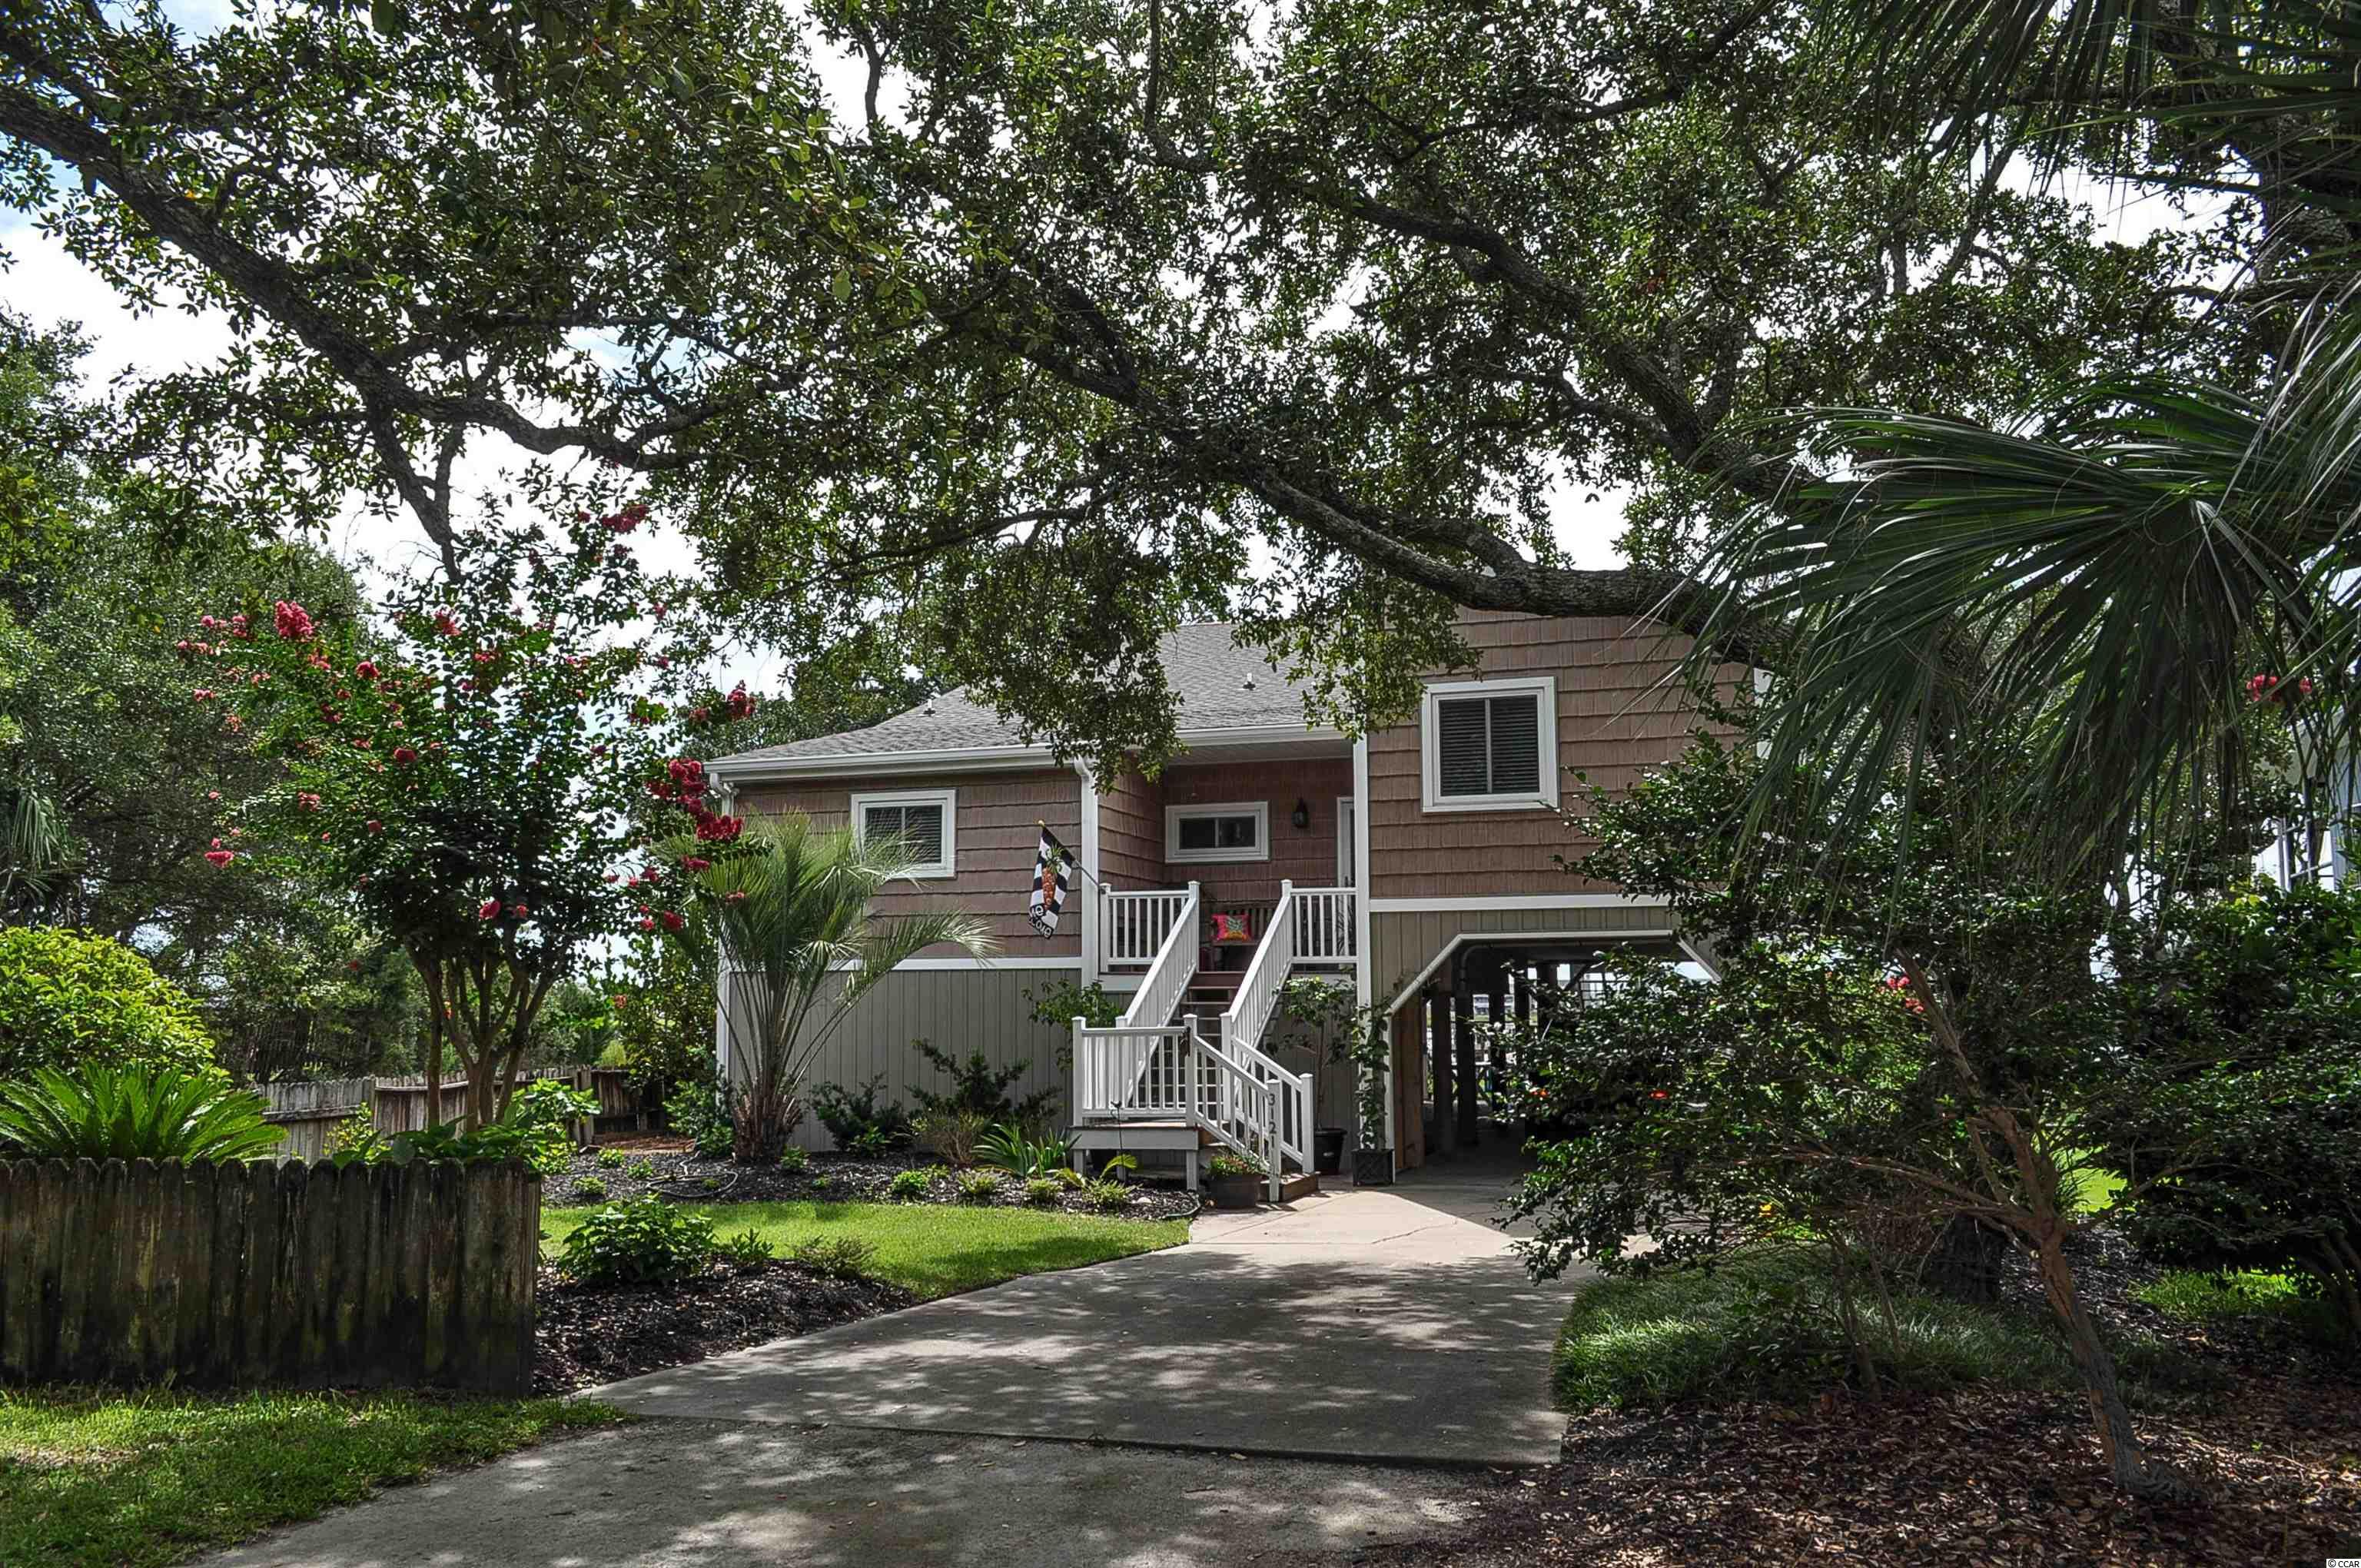 3121 1st Ave. S Murrells Inlet, SC 29576